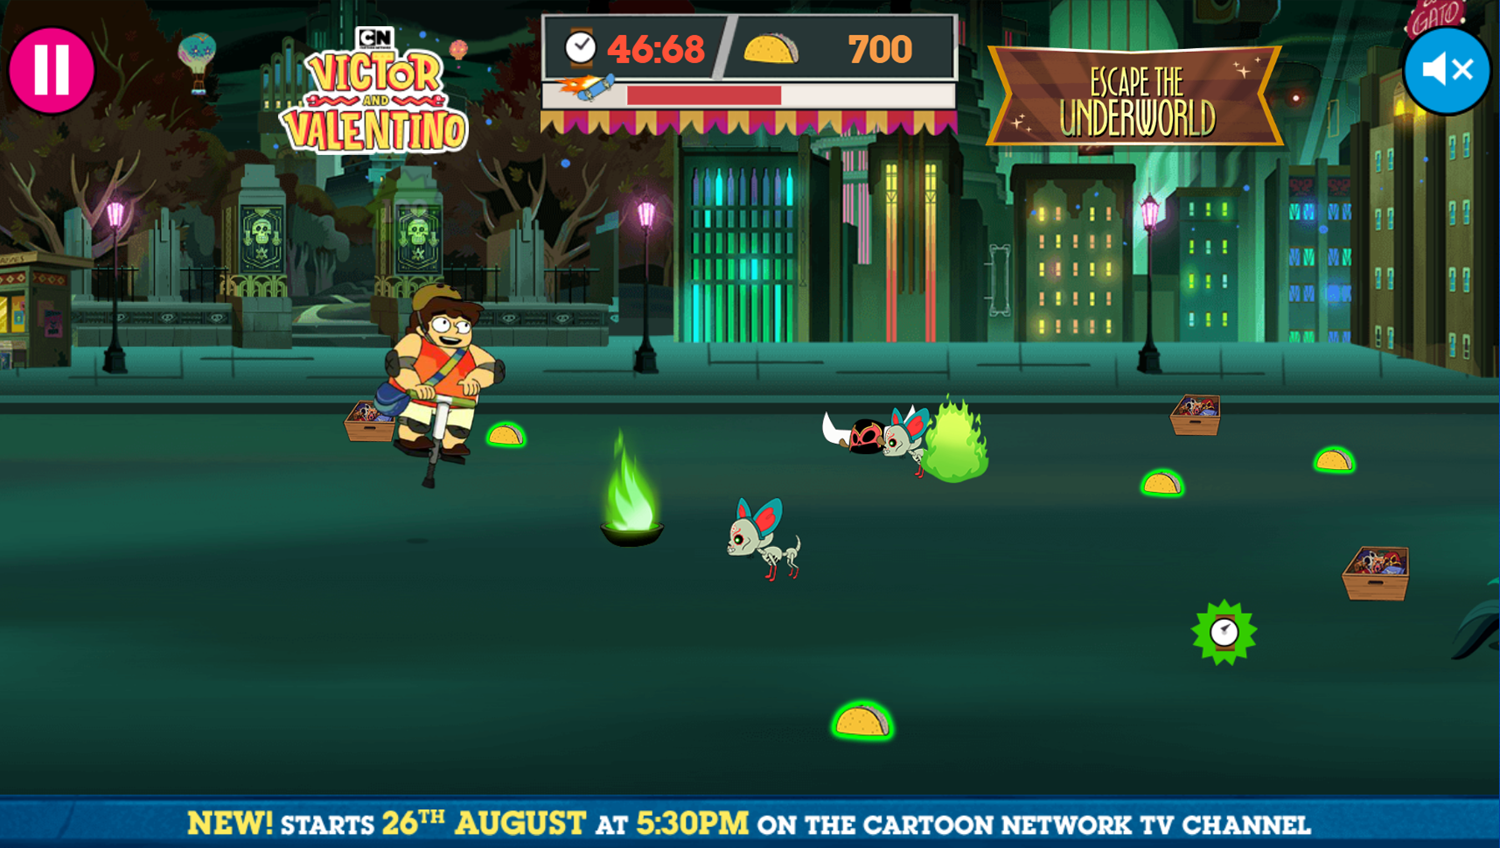 Victor and Valentino Mission to Monte Macabre Case Game Escape The Underworld Gameplay Screenshot.